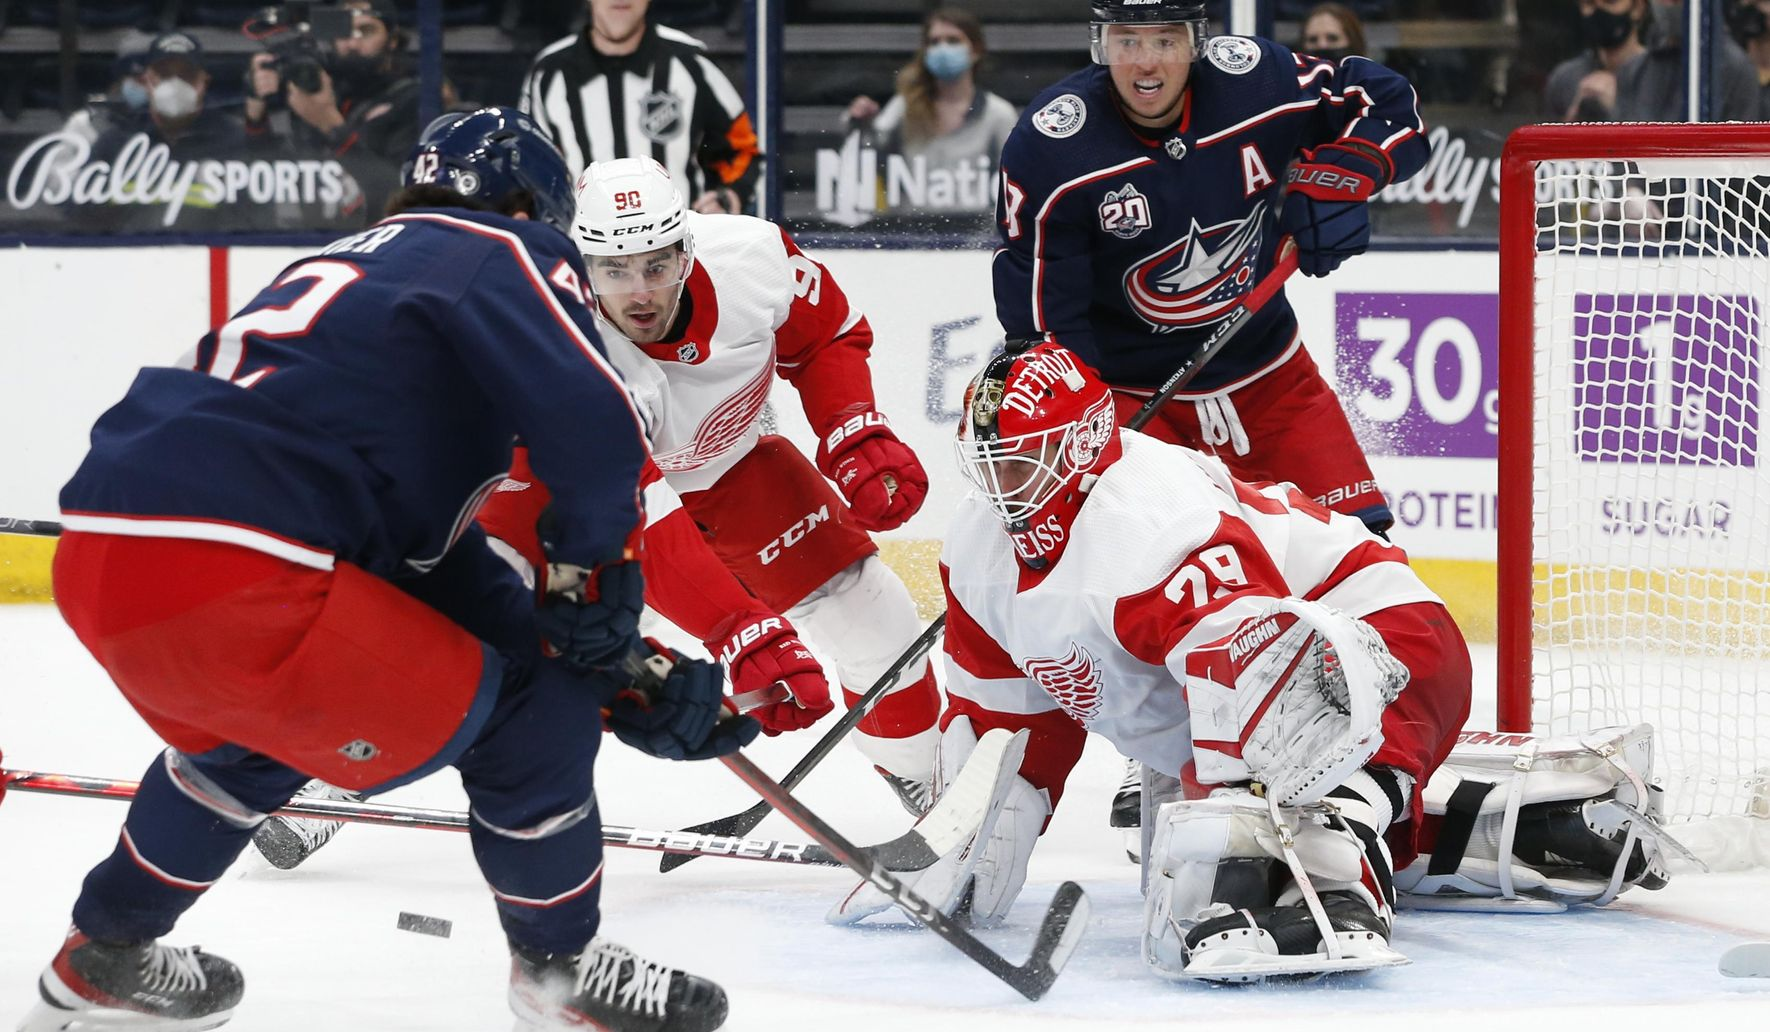 Merzlikins shuts out Red Wings, Blue Jackets win in shootout